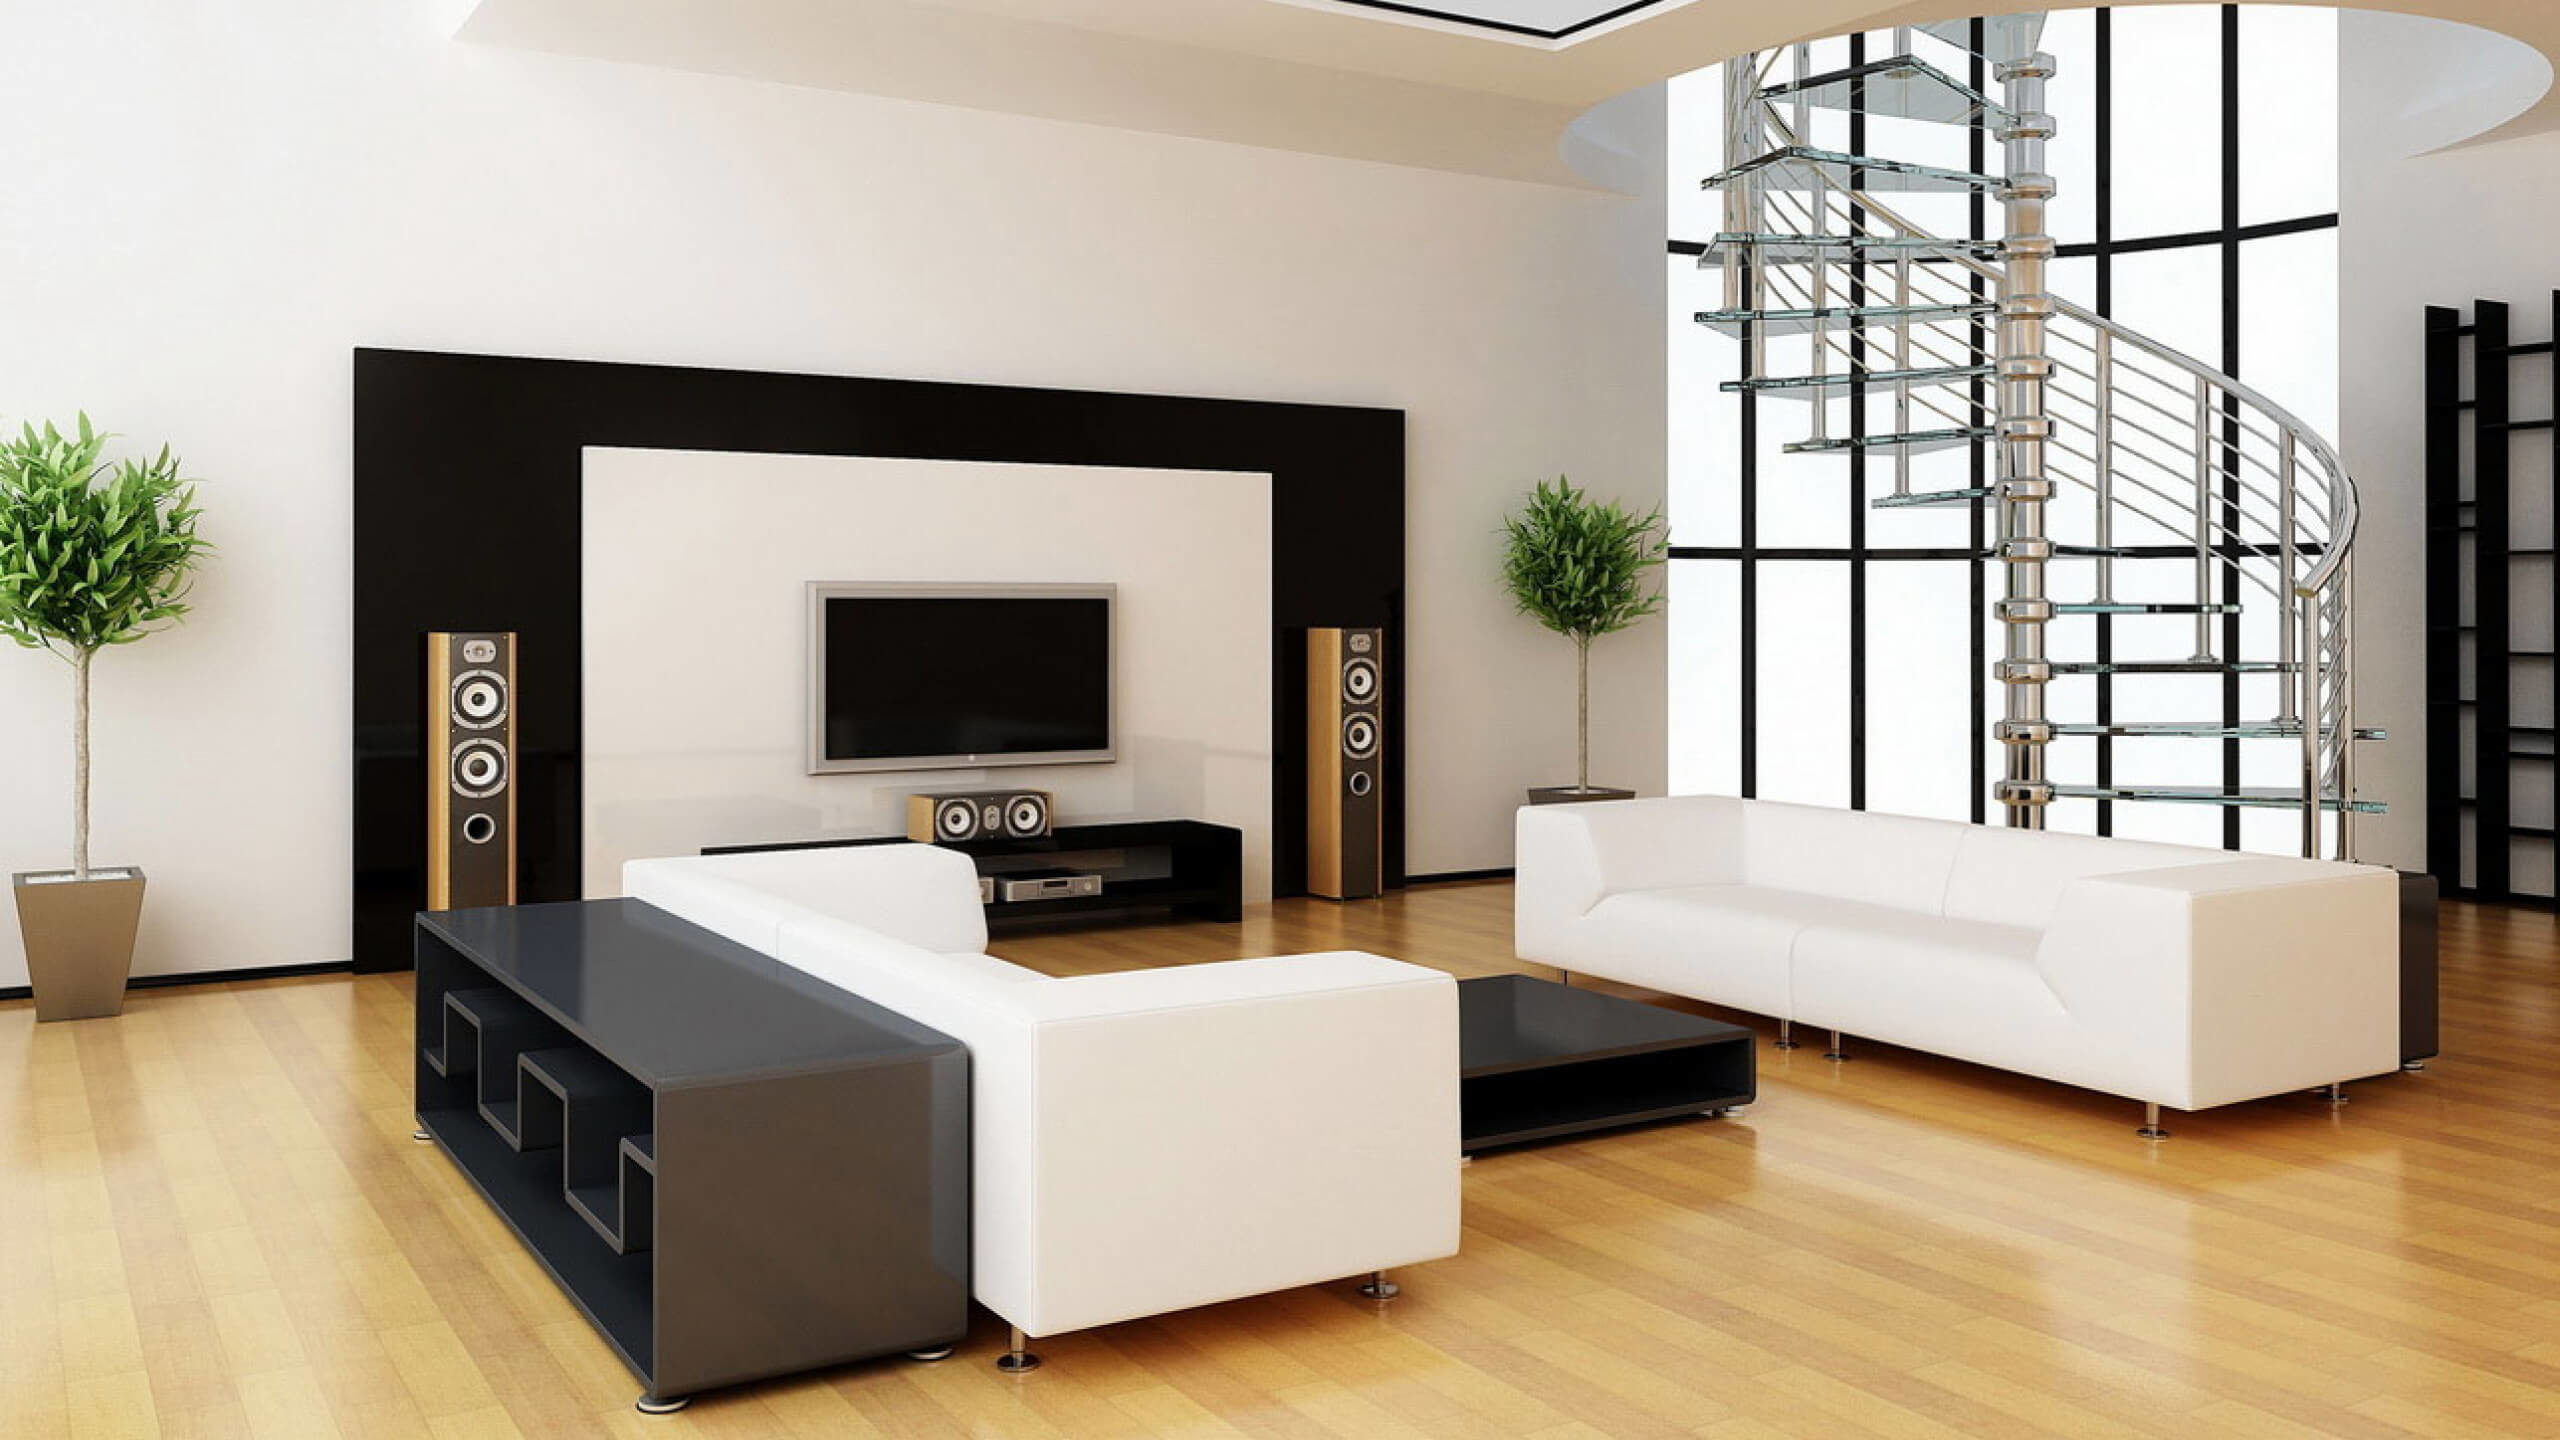 Contemporary Style Furniture From China Globus Furniture